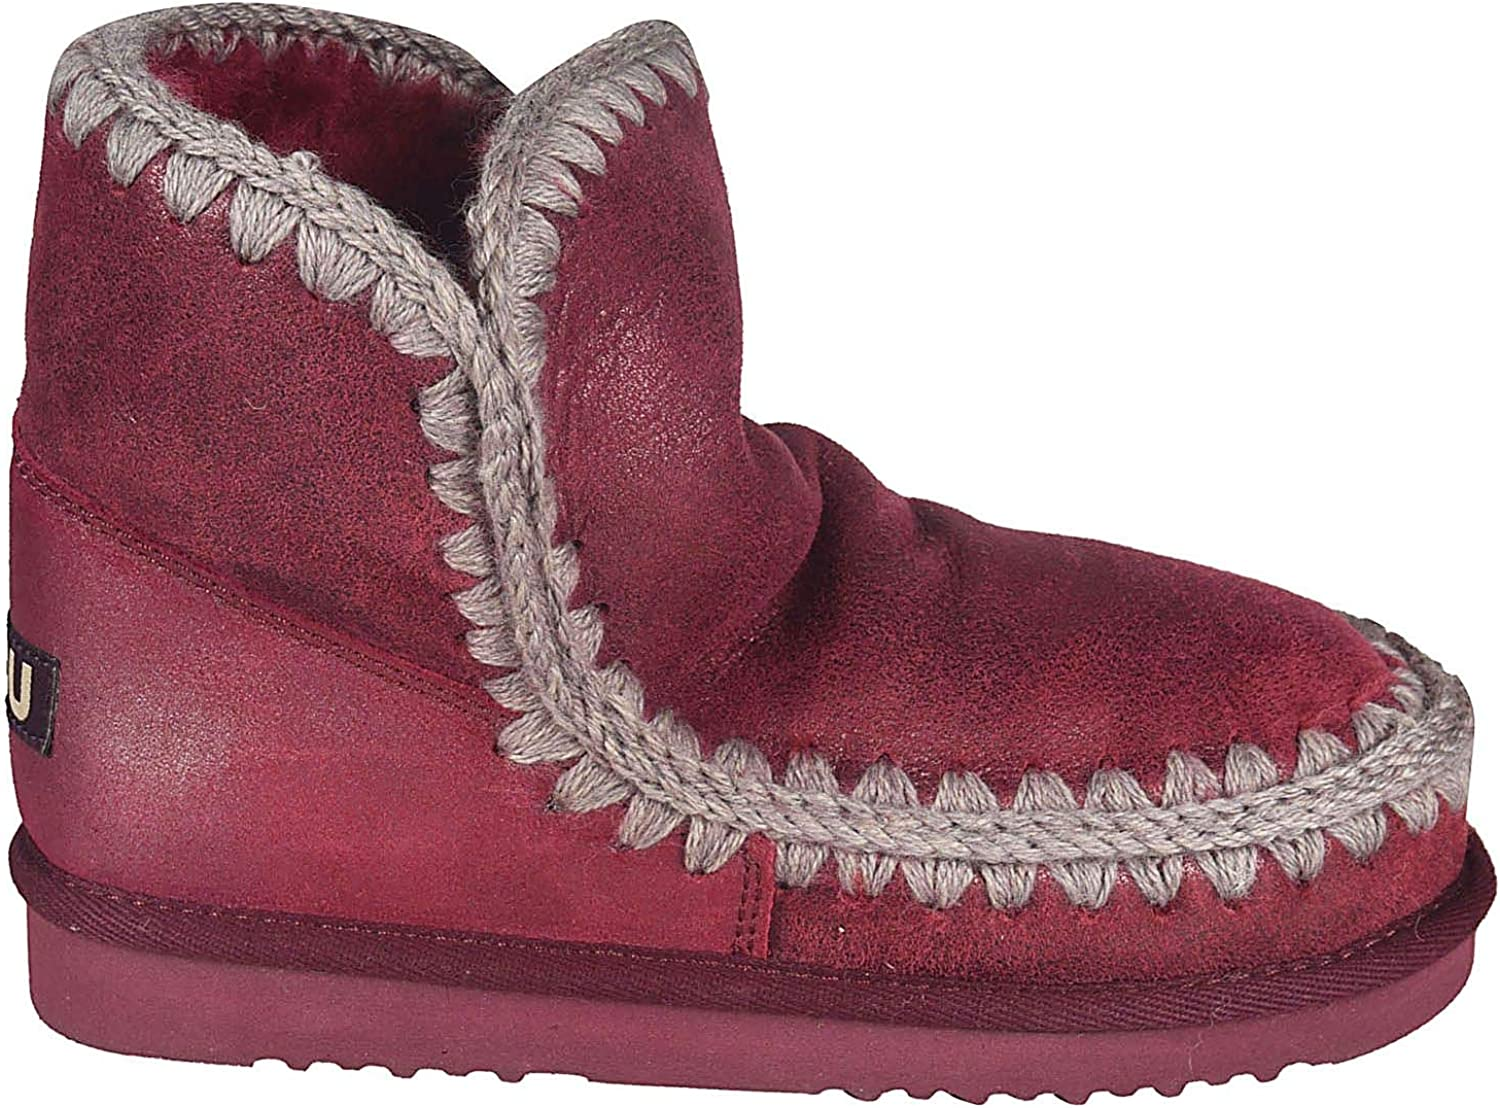 Mou Luxury Fashion Womens ESKIMO18RED Red Ankle Boots | Fall Winter 19 71wJxkSQEELUL1500_